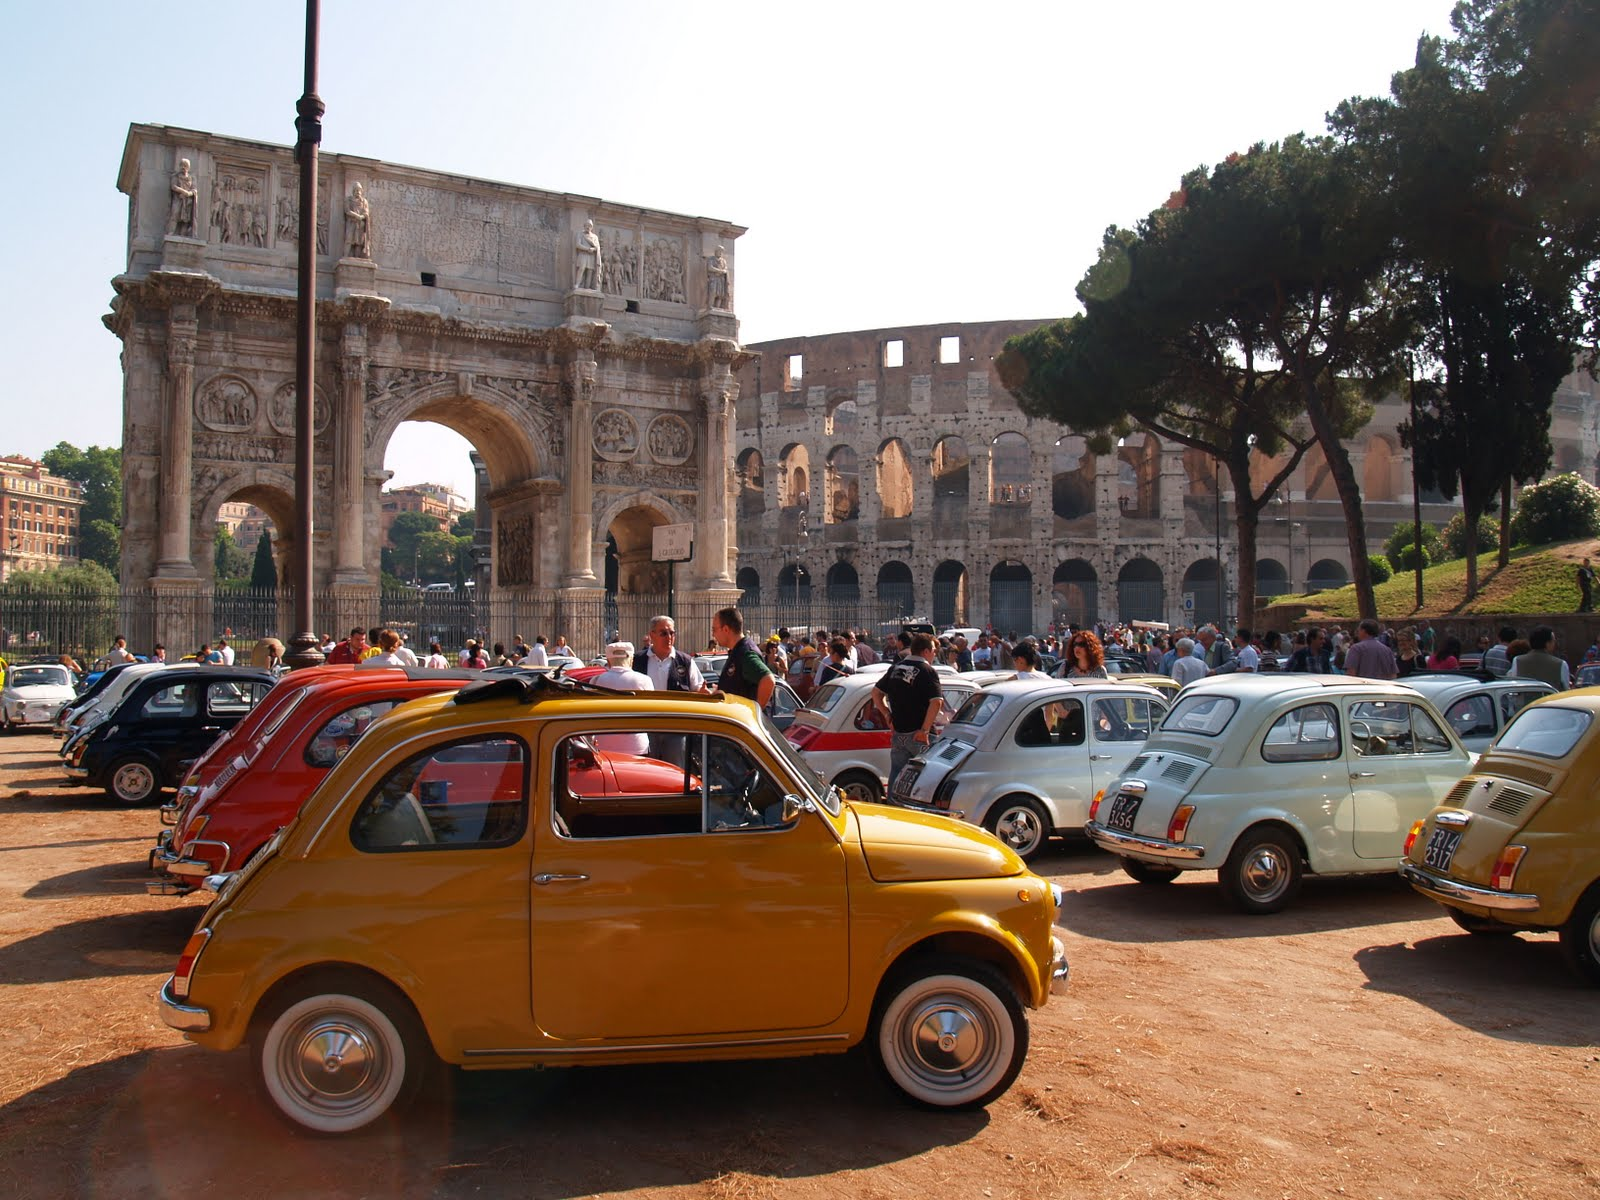 The Joyful Sun Diaries Joined The Fiat 500 Rally In Rome